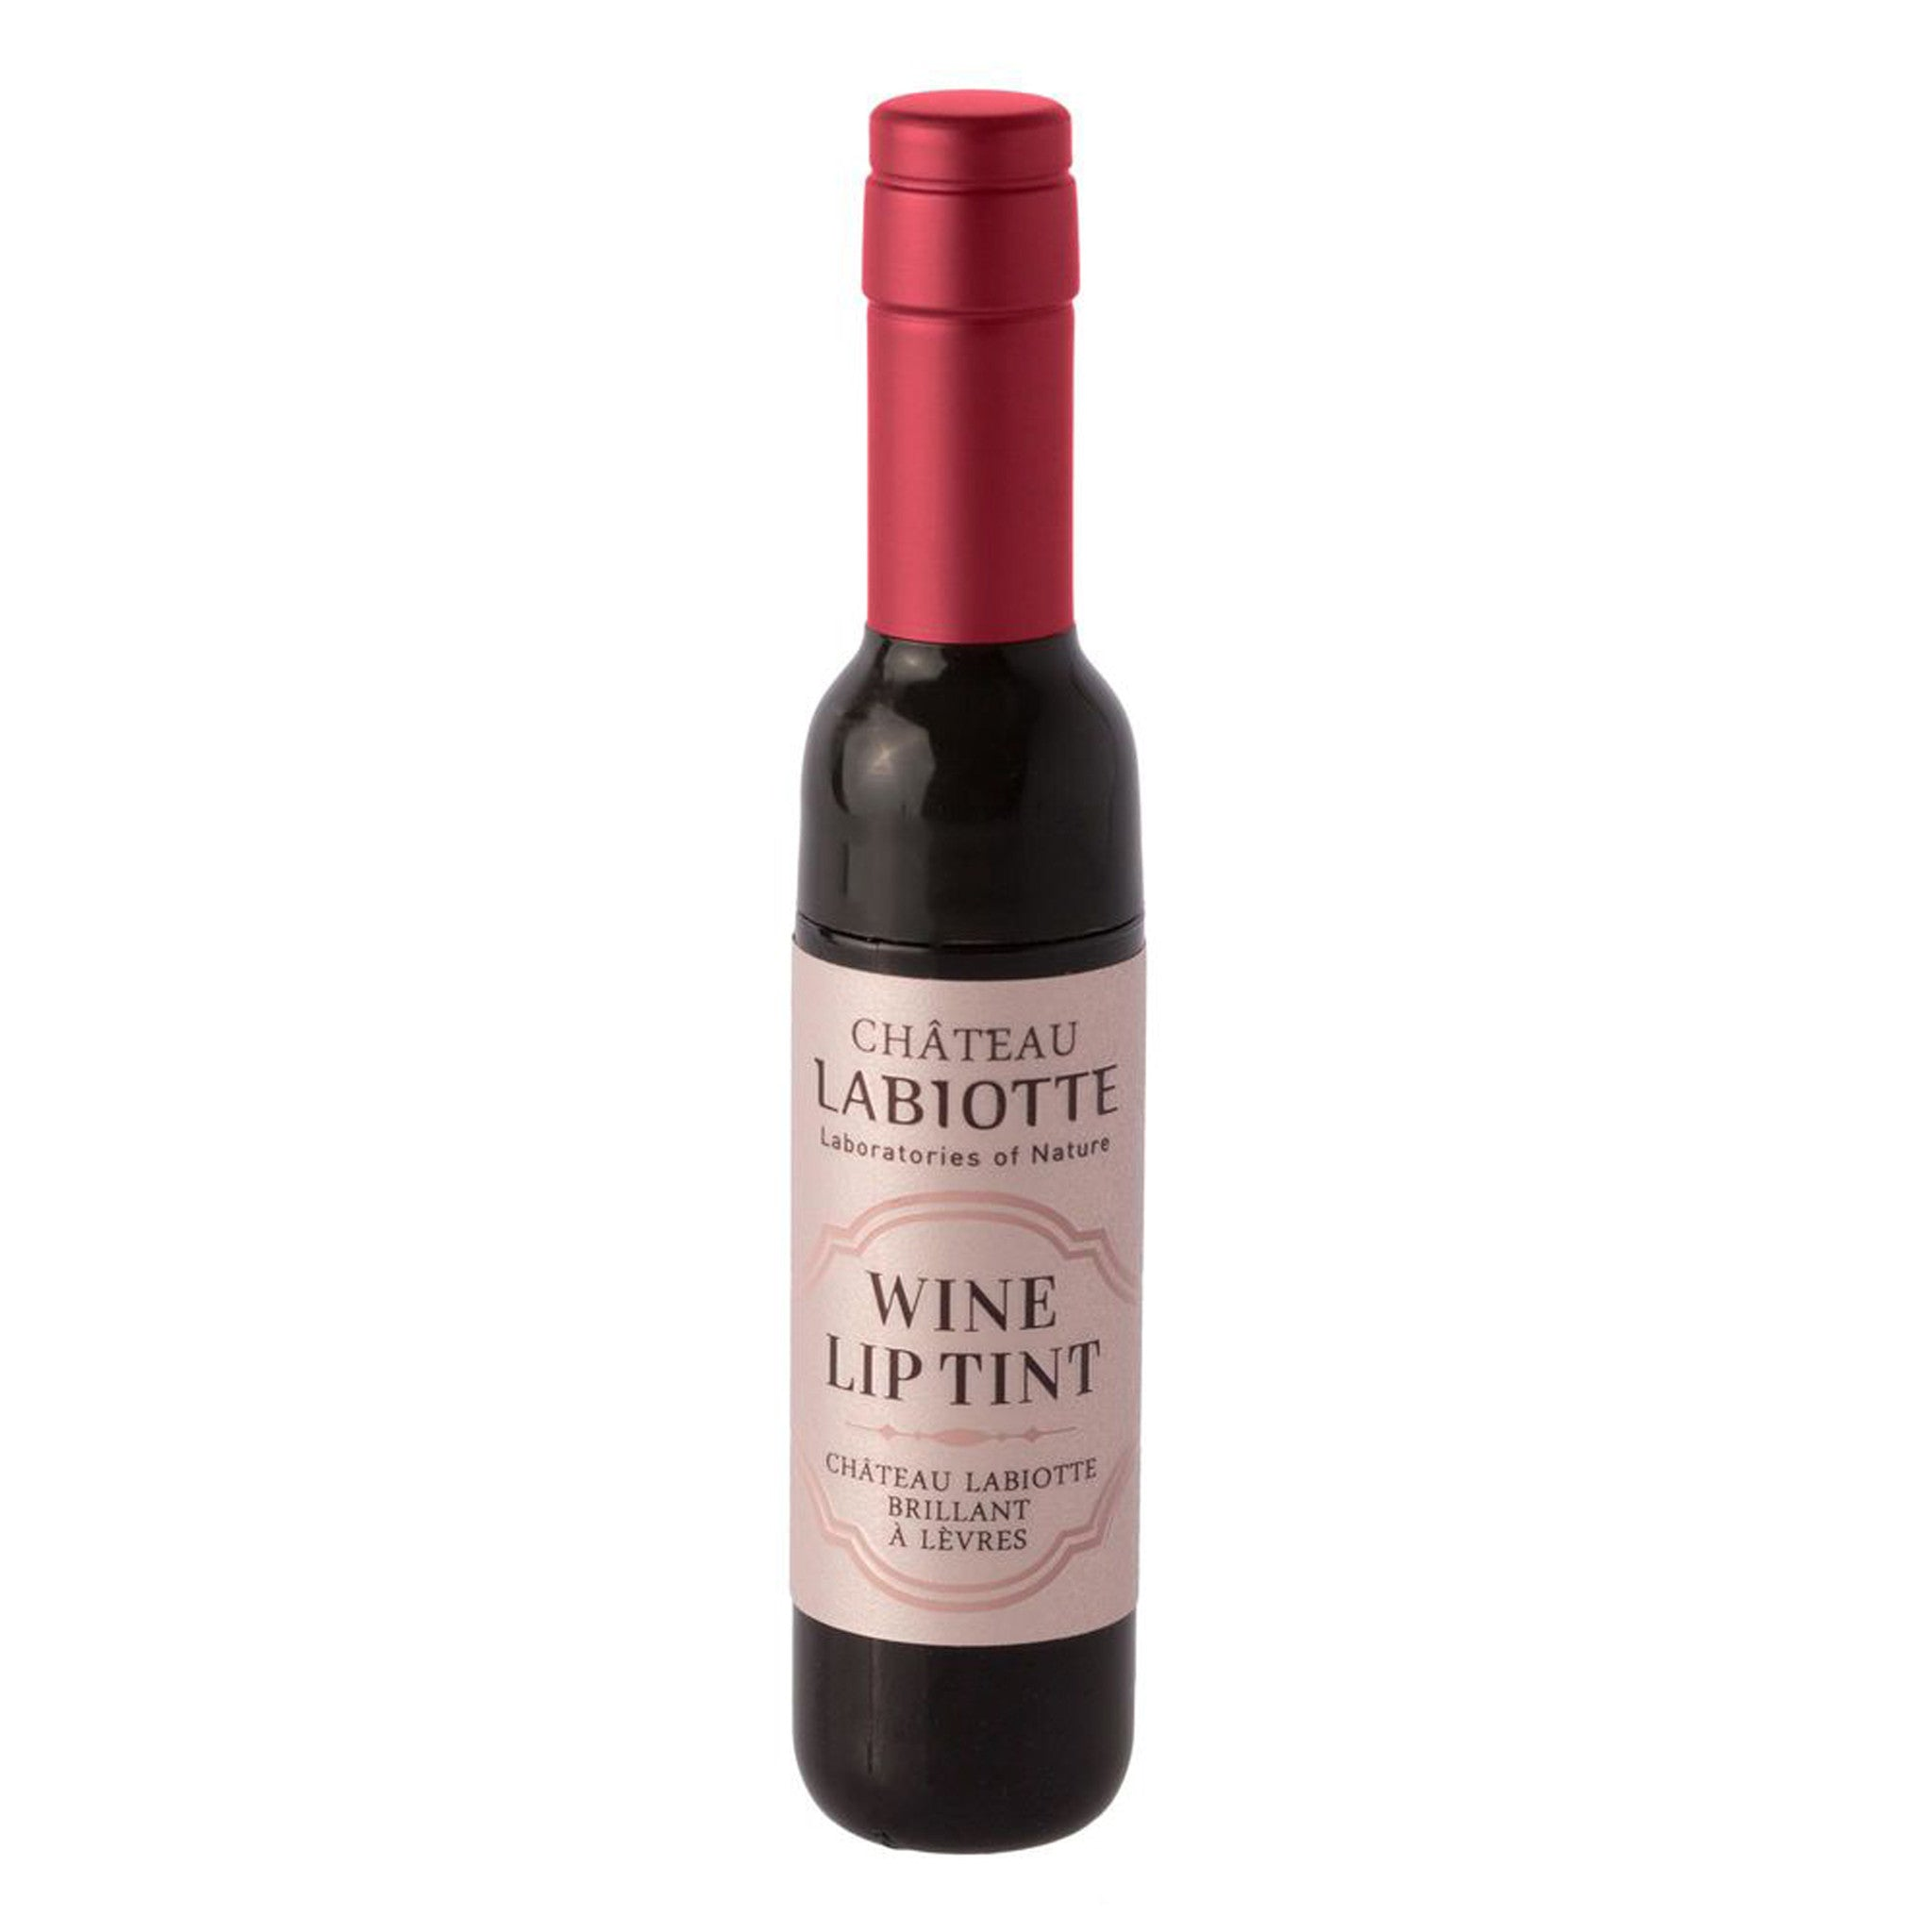 Chateau Labiotte Wine Lip Tint 'Nebbiolo Red'